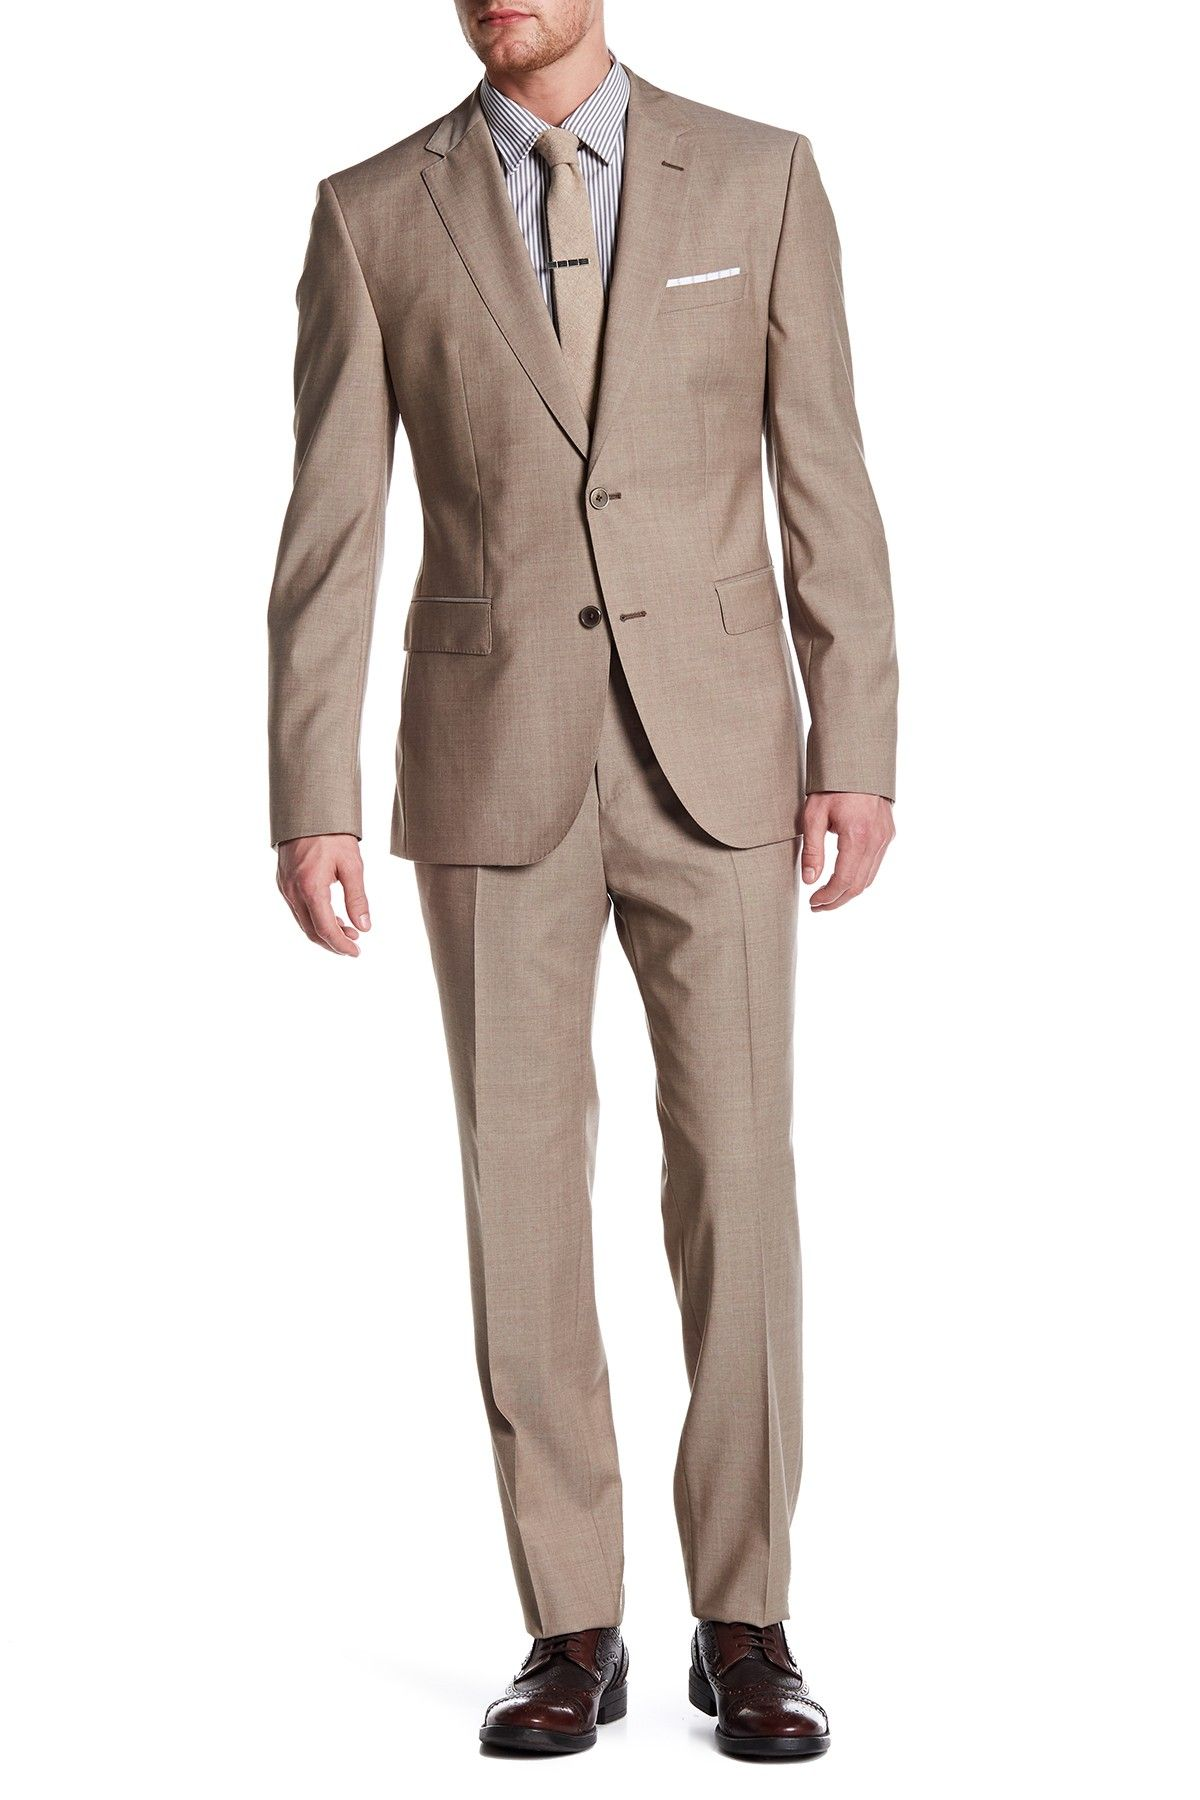 d7d1ea049 Jewels/Linus Two Button Notch Lapel Trim Fit Wool Suit | Products ...